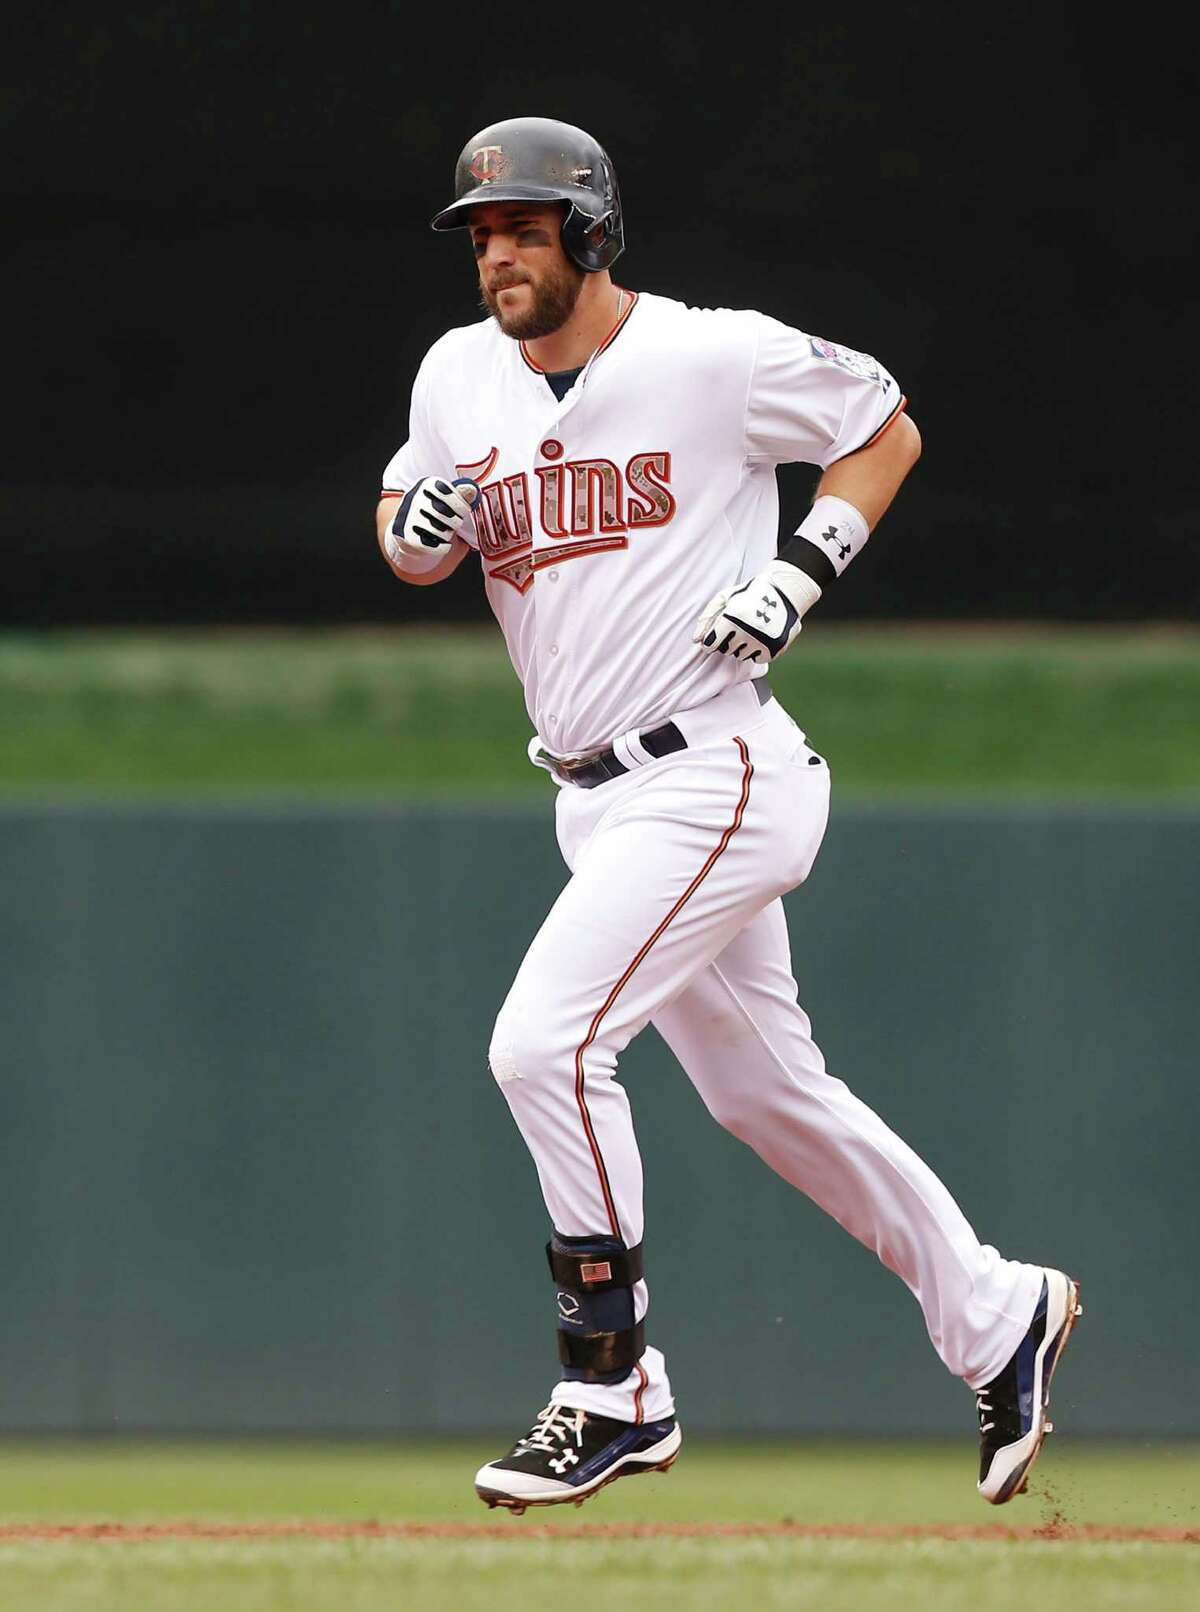 Minnesota Twins?' Trevor Plouffe rounds the bases on a three-run home run off Boston Red Sox pitcher Joe Kelly in the second inning of a baseball game, Monday, May 25, 2015, in Minneapolis. (AP Photo/Jim Mone) ORG XMIT: MNJM107